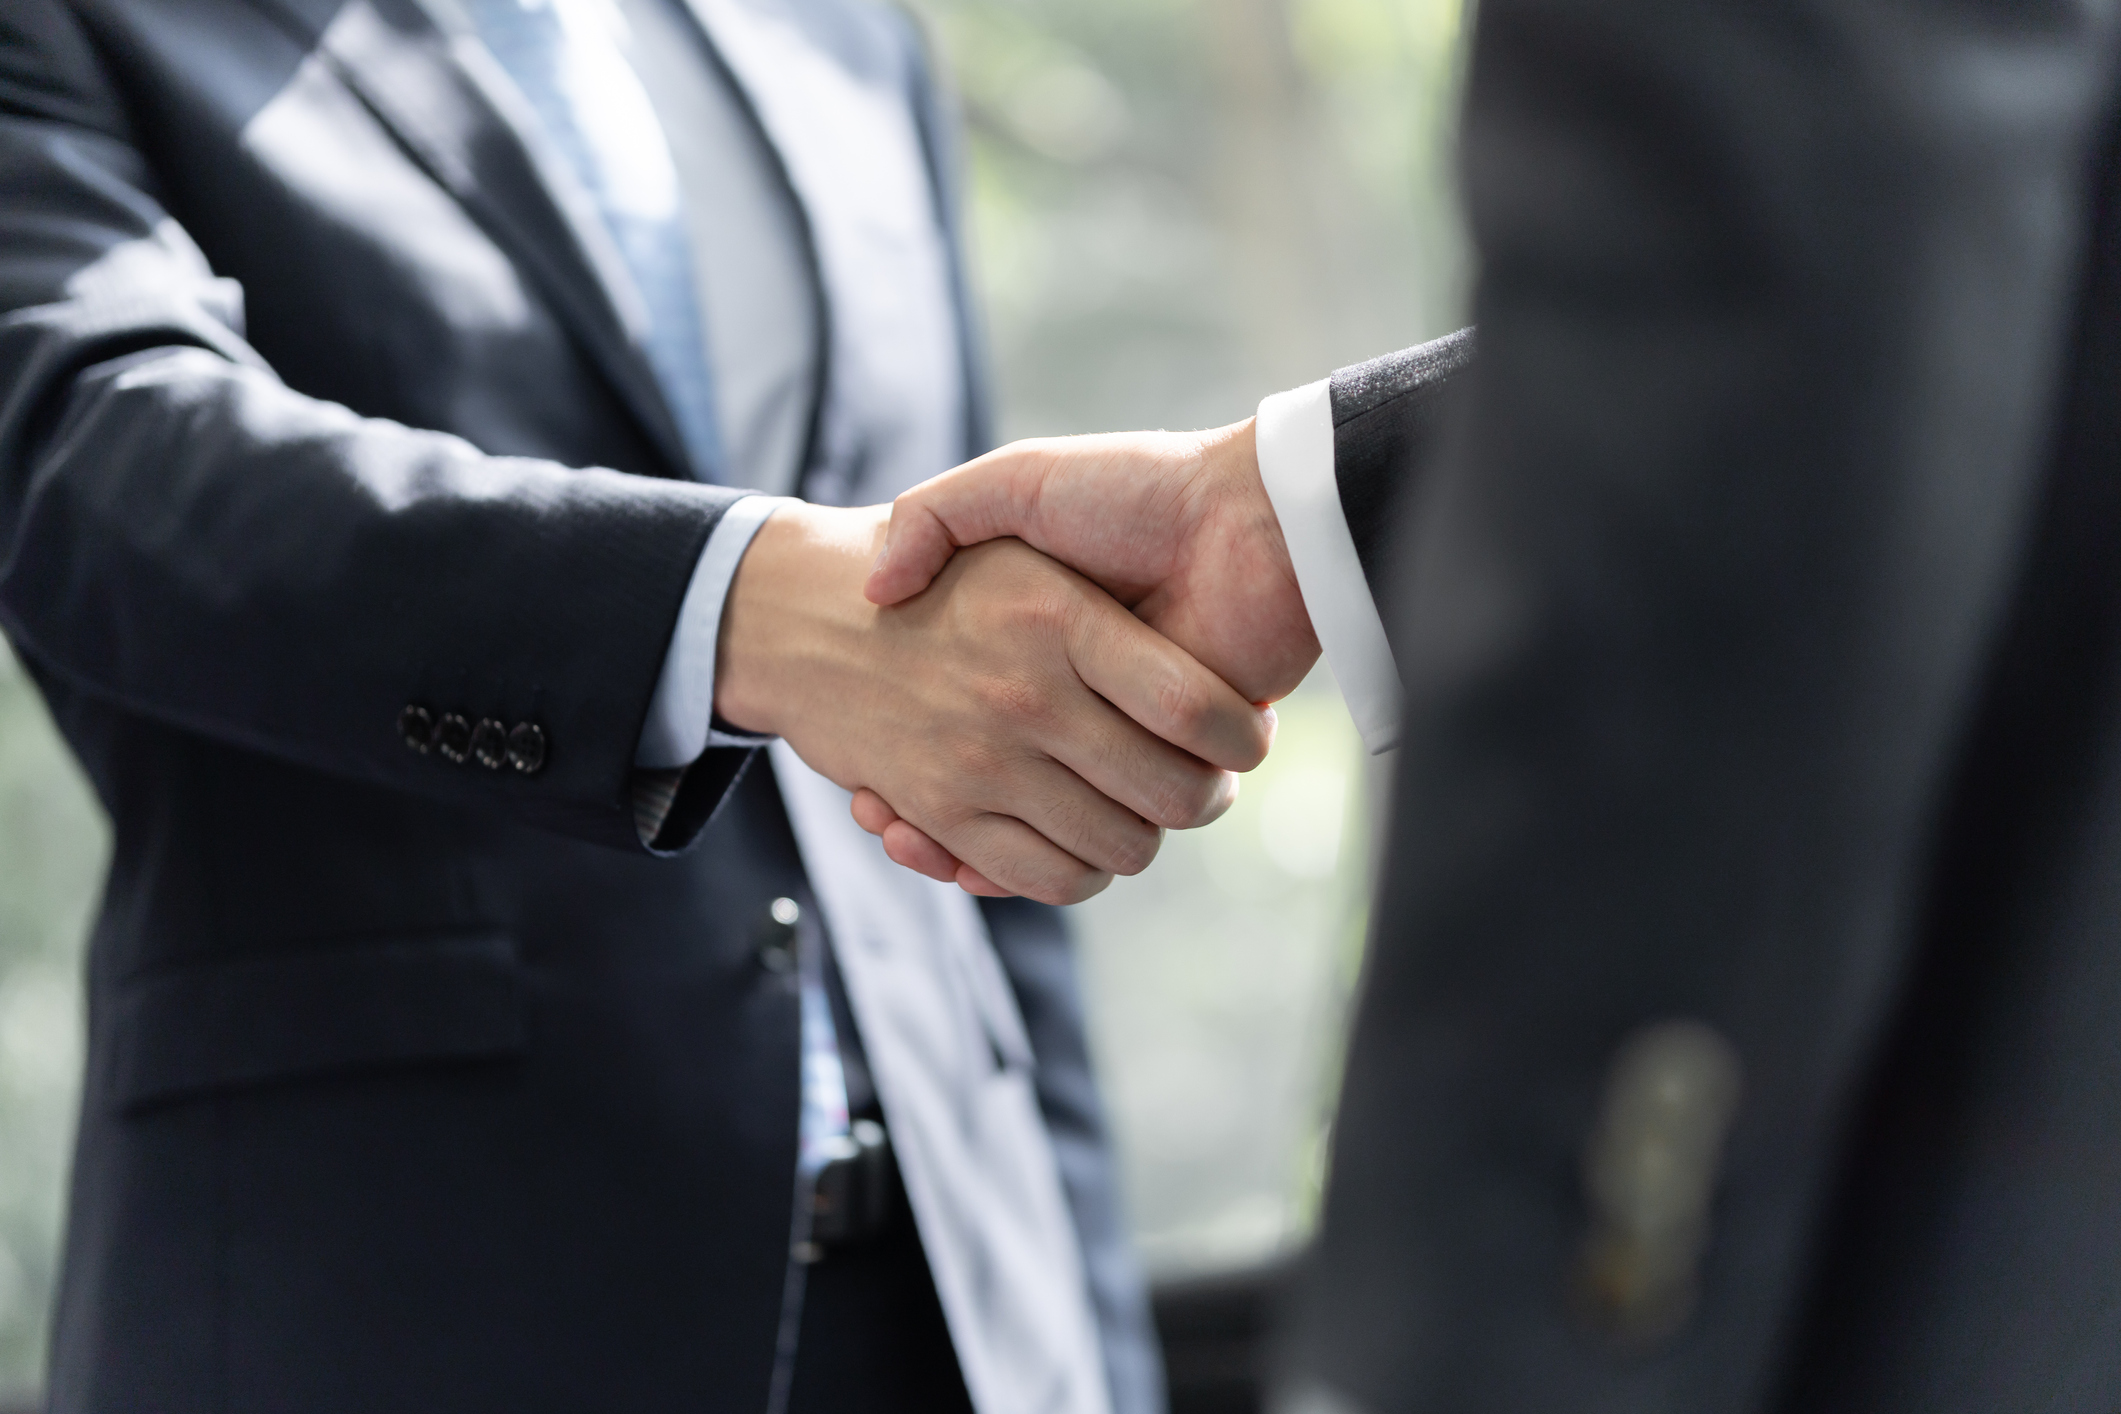 two businessmen shaking hands, signaling a partnership